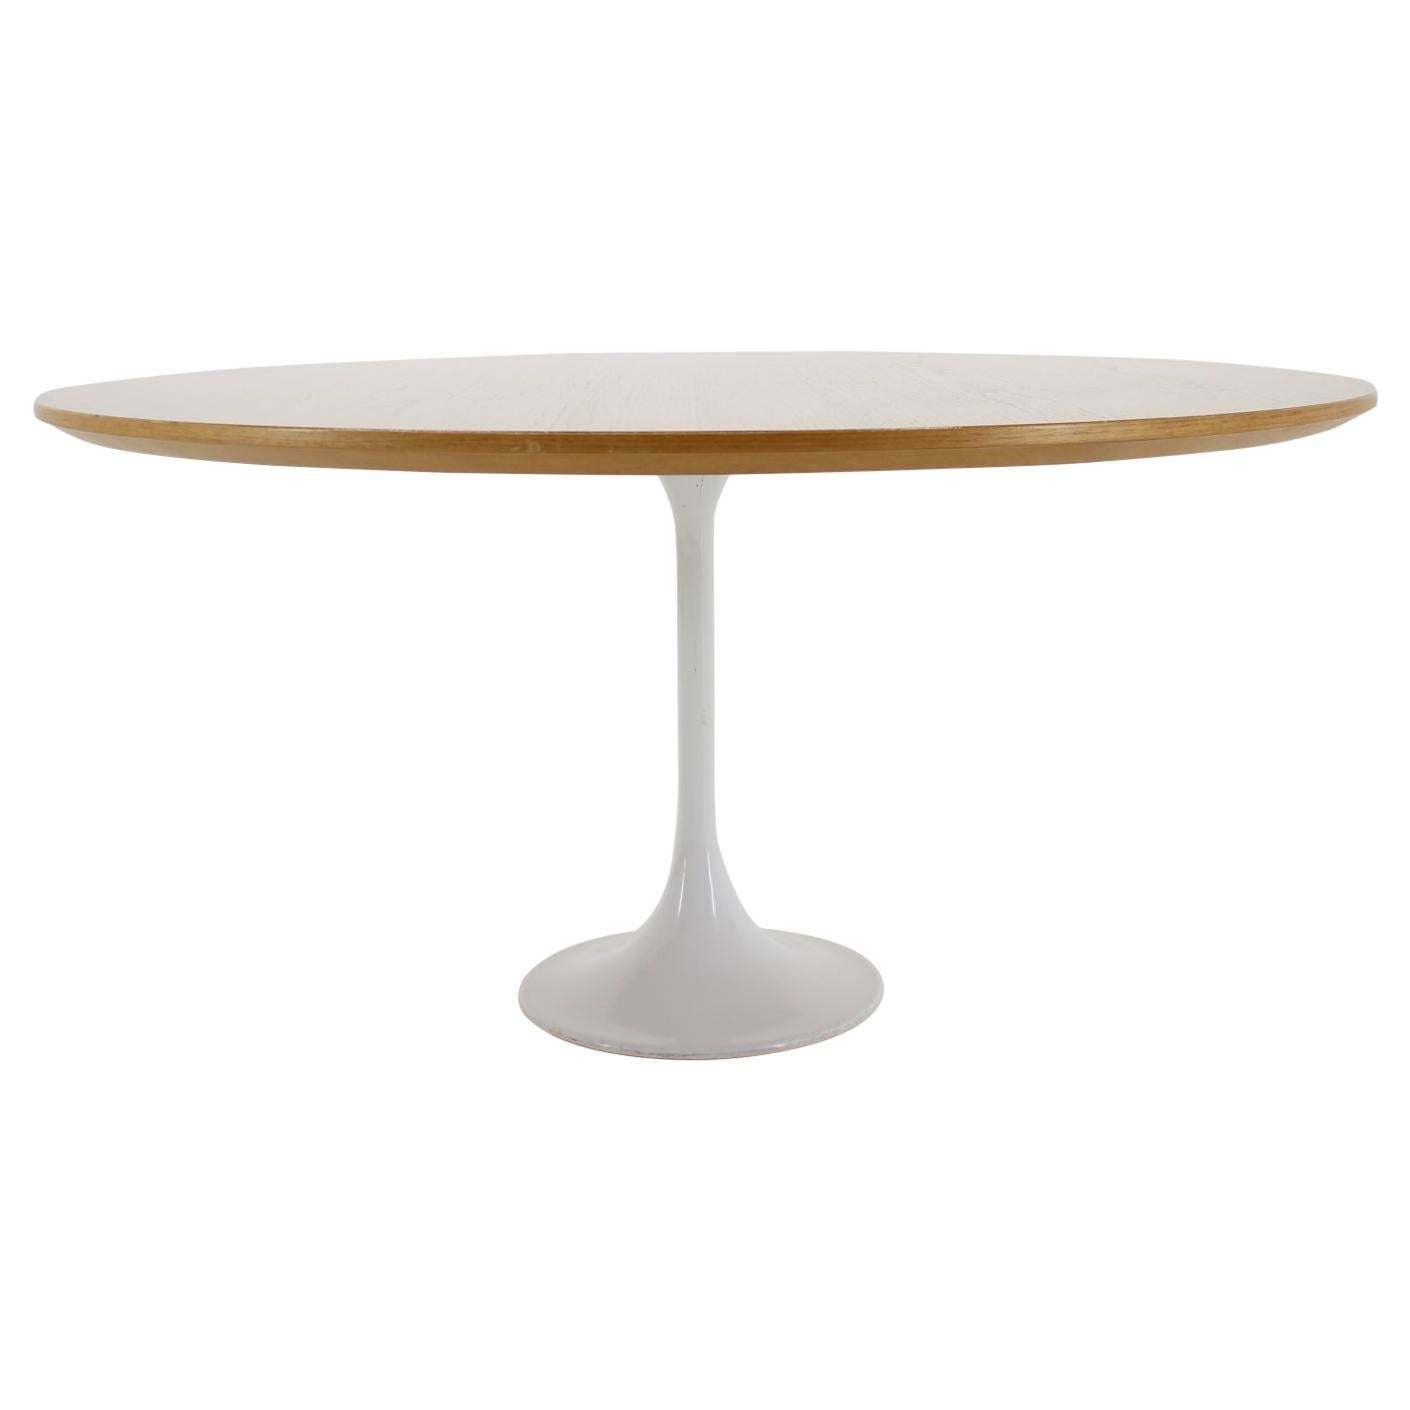 Midcentury Tulip Table in Style of Eero Saarinen